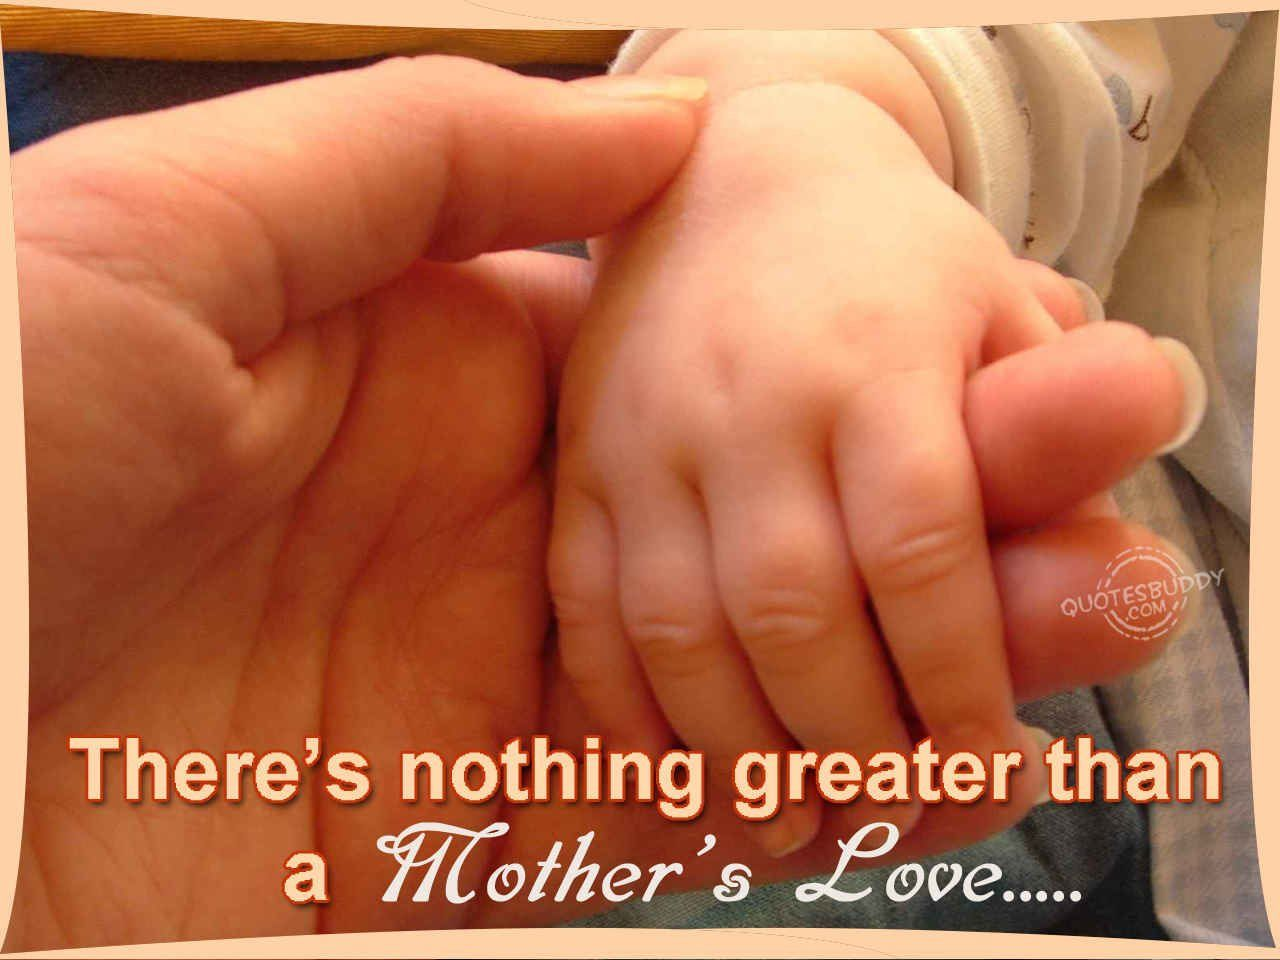 Mother Daughter Love Quotes There's Nothing Greater Than A Mother's Love Mothers Day Mothers